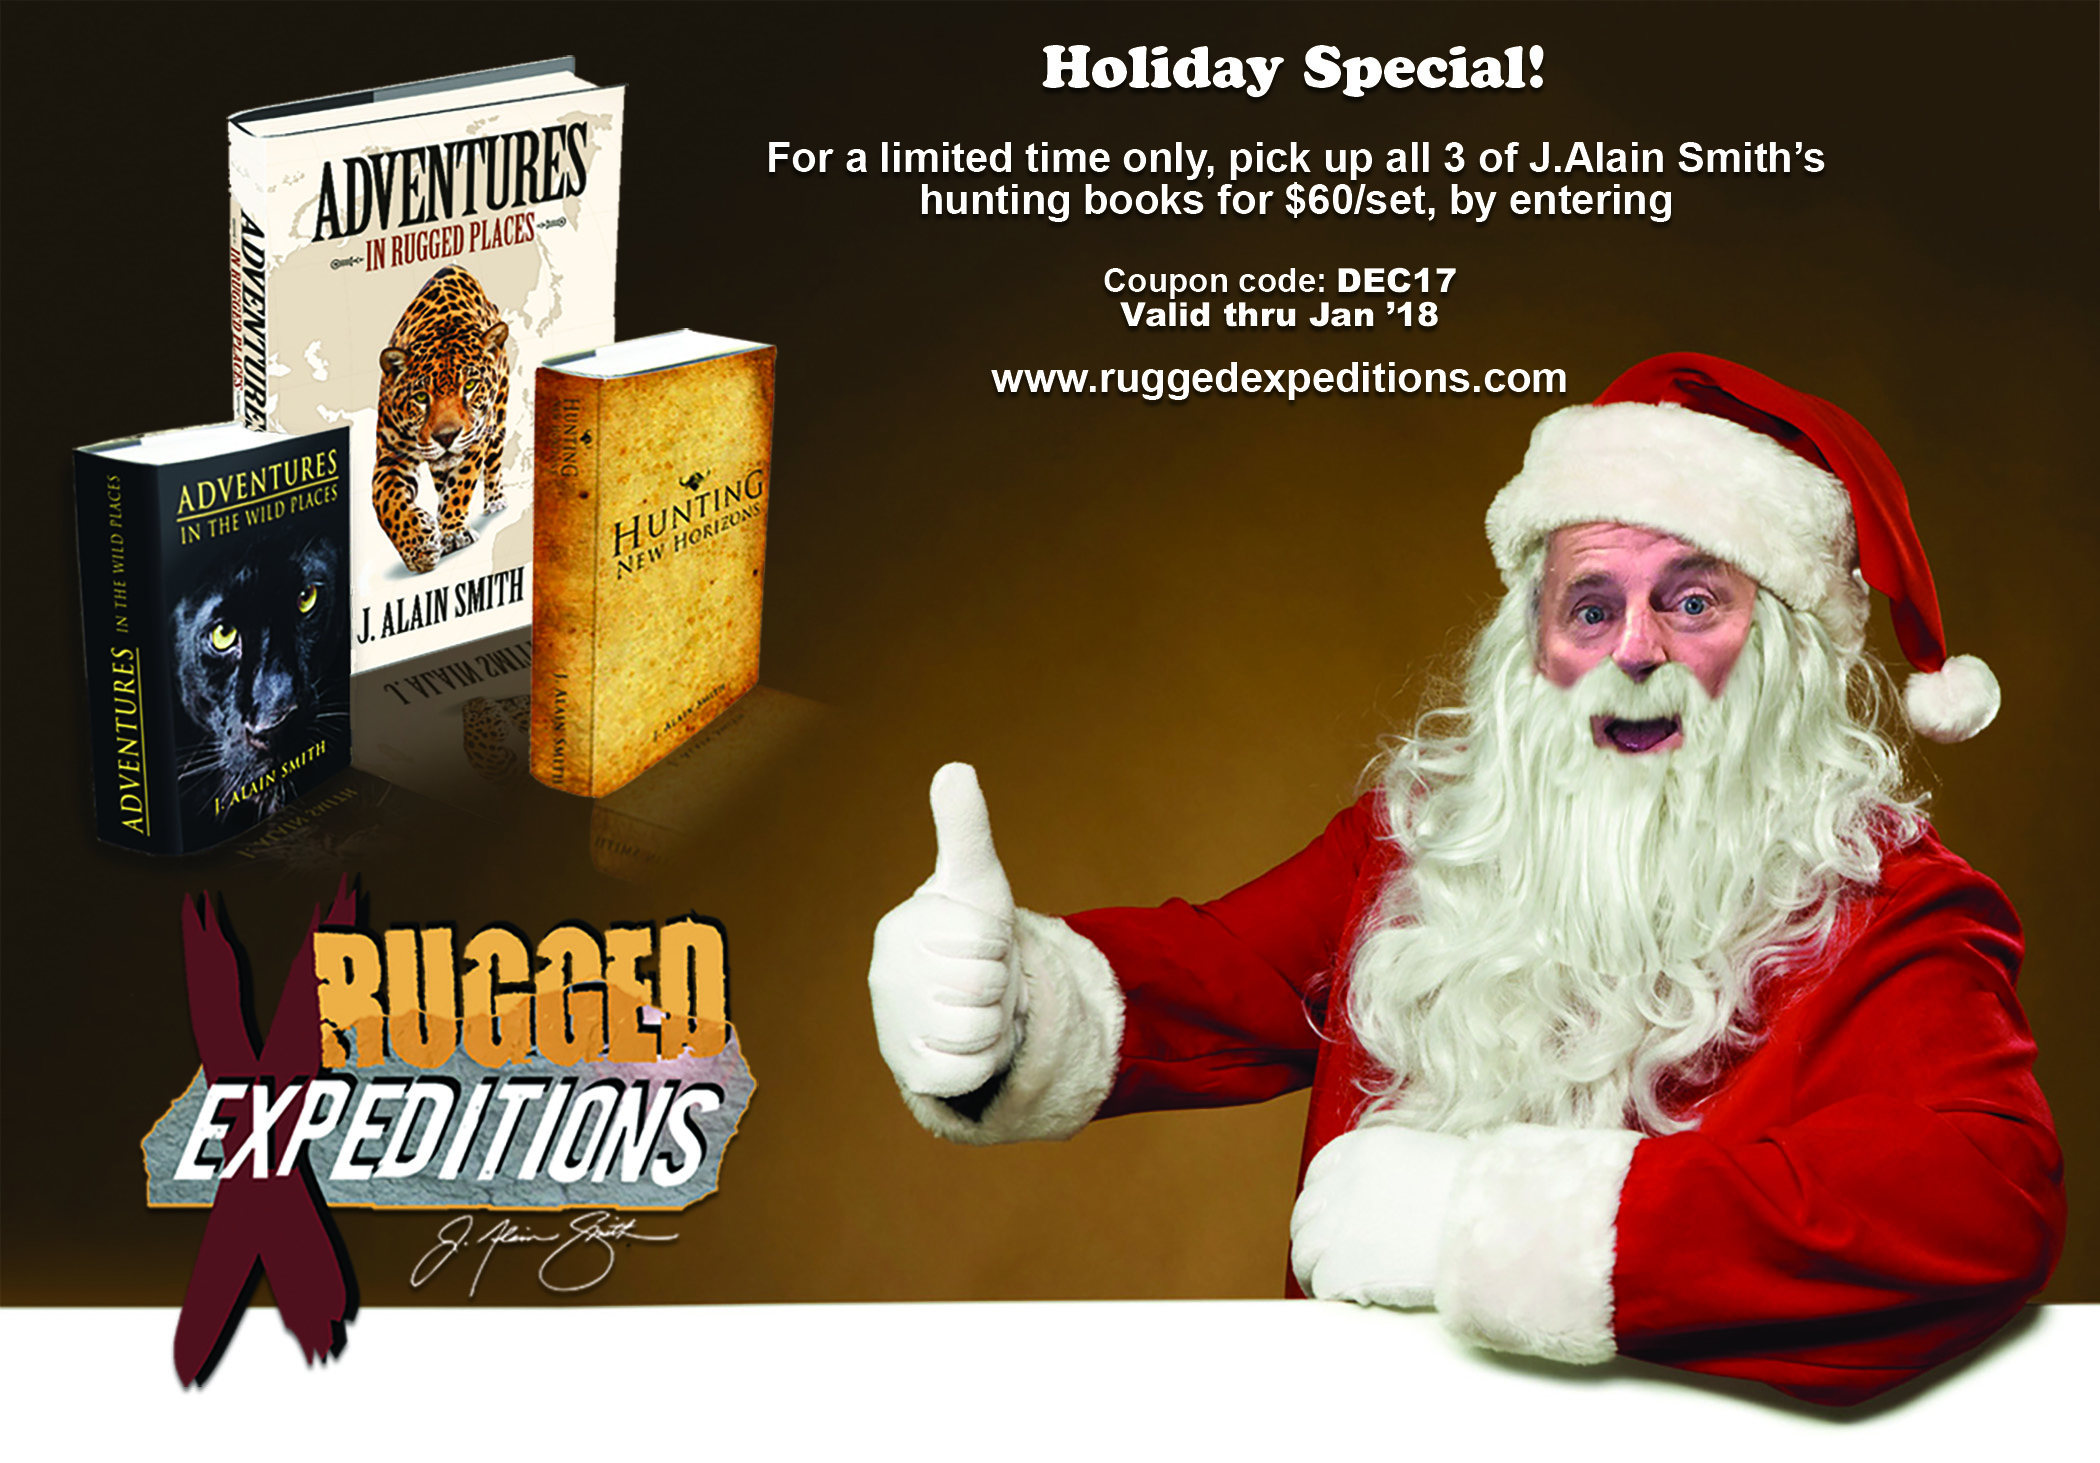 Christmas Special Sale on Hunting Books!